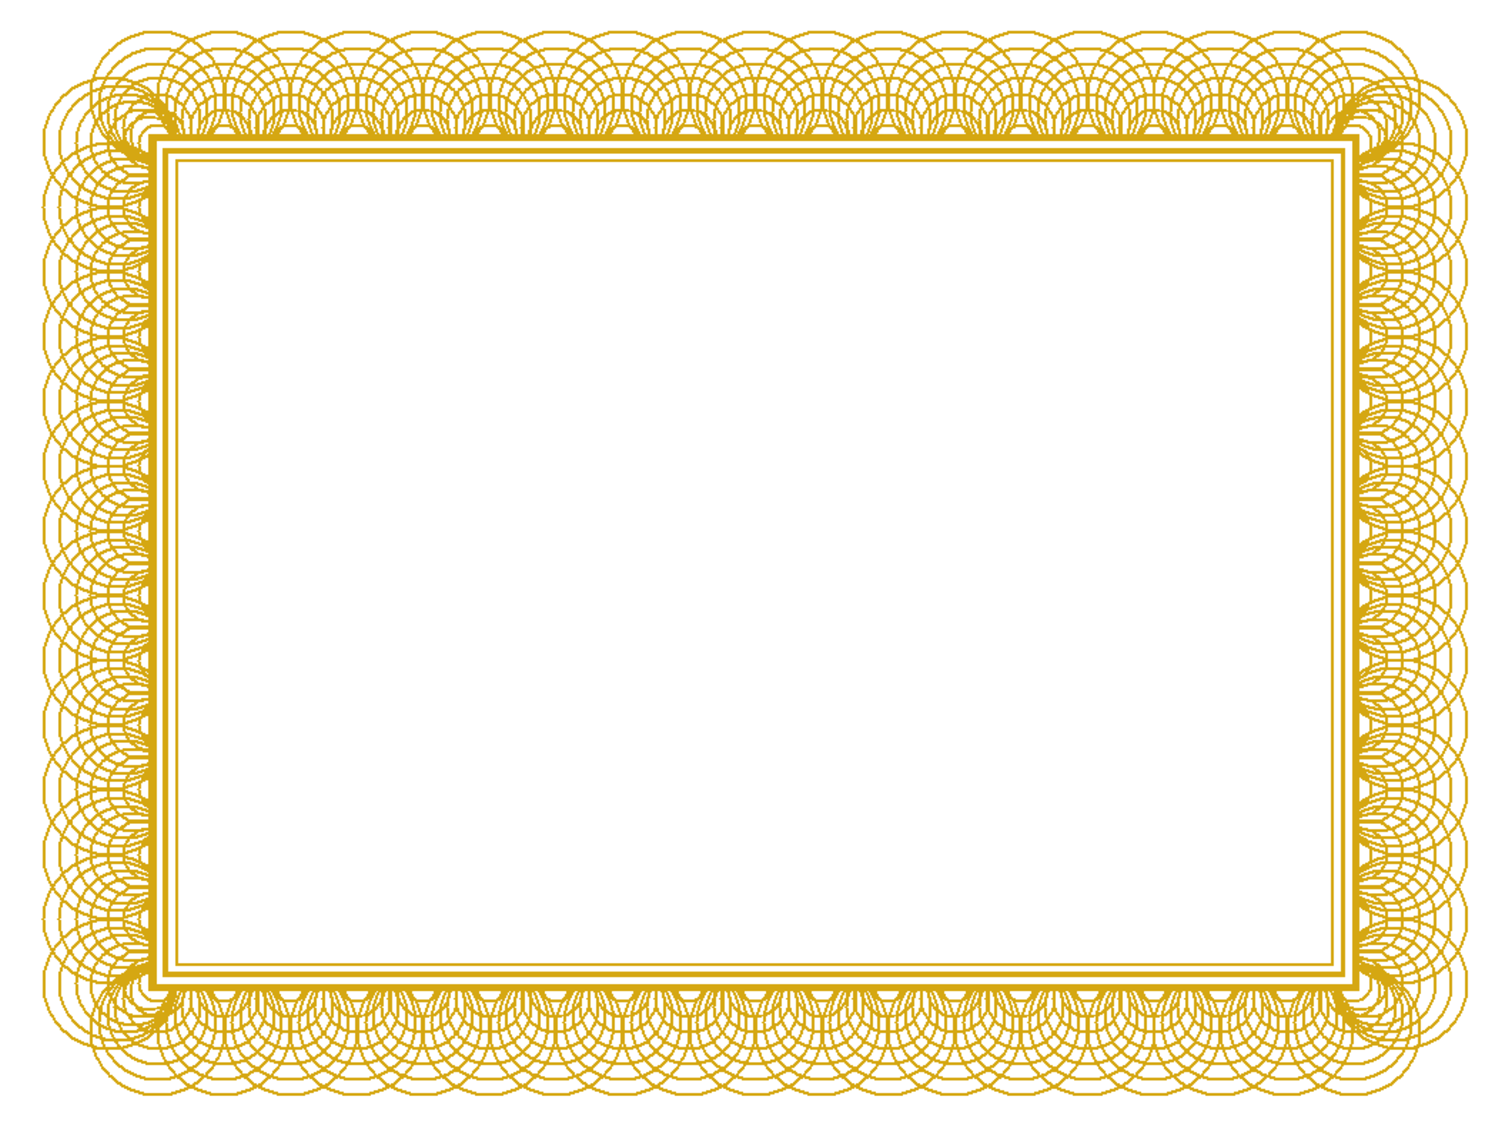 9 Gold Certificate Borders Vector Images